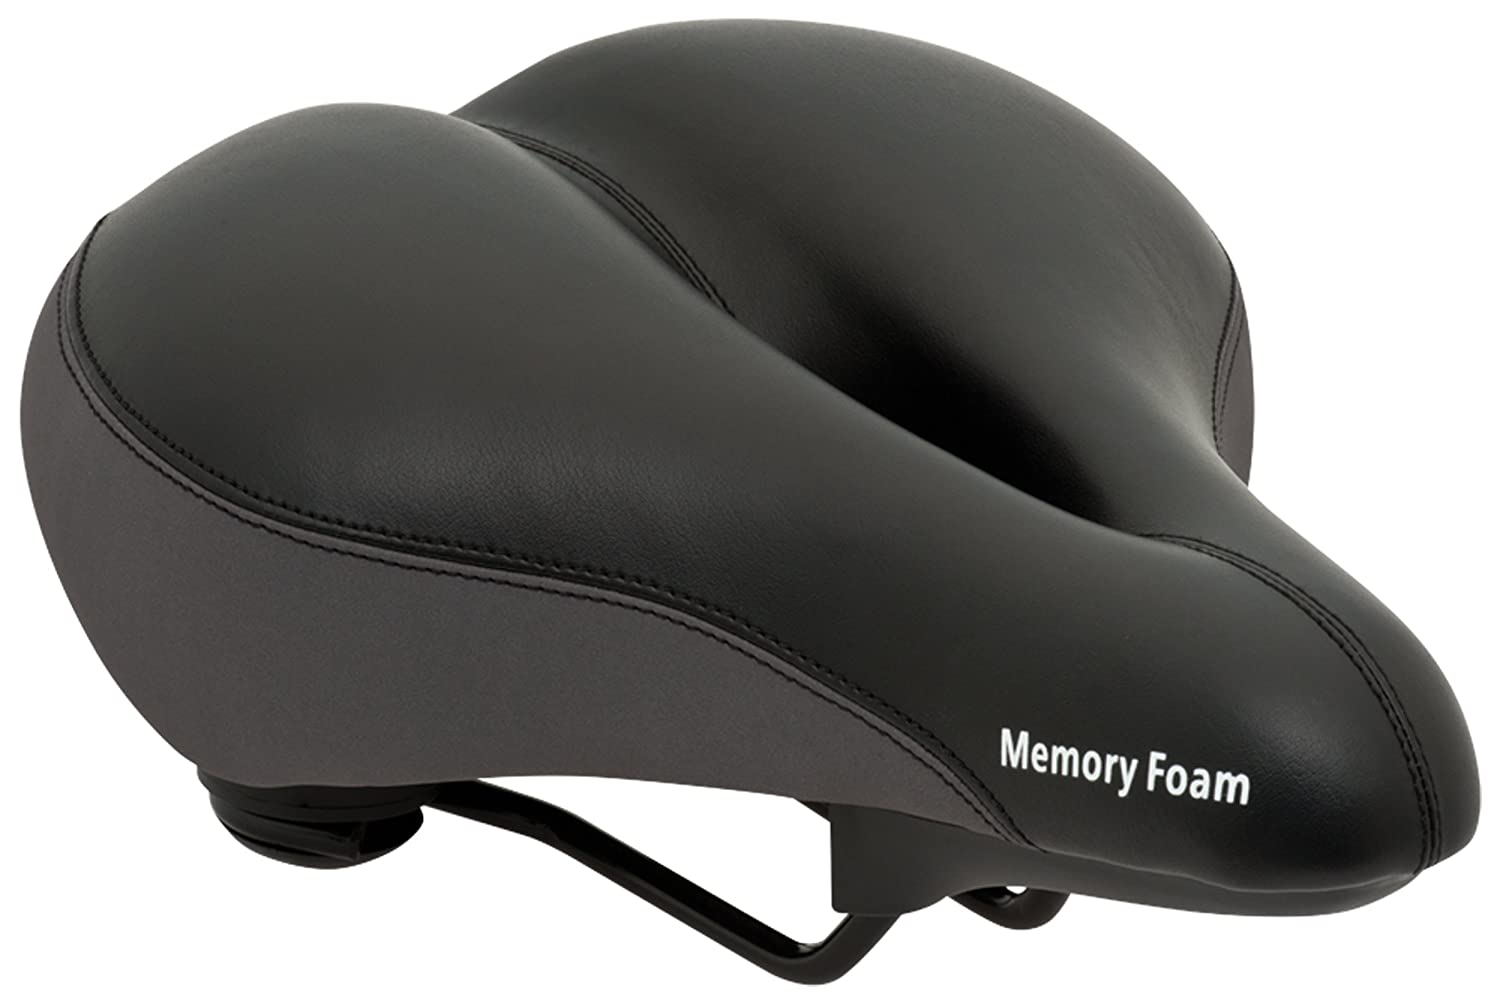 Bikes Seats For Overweight People Memory Foam Bike Seat